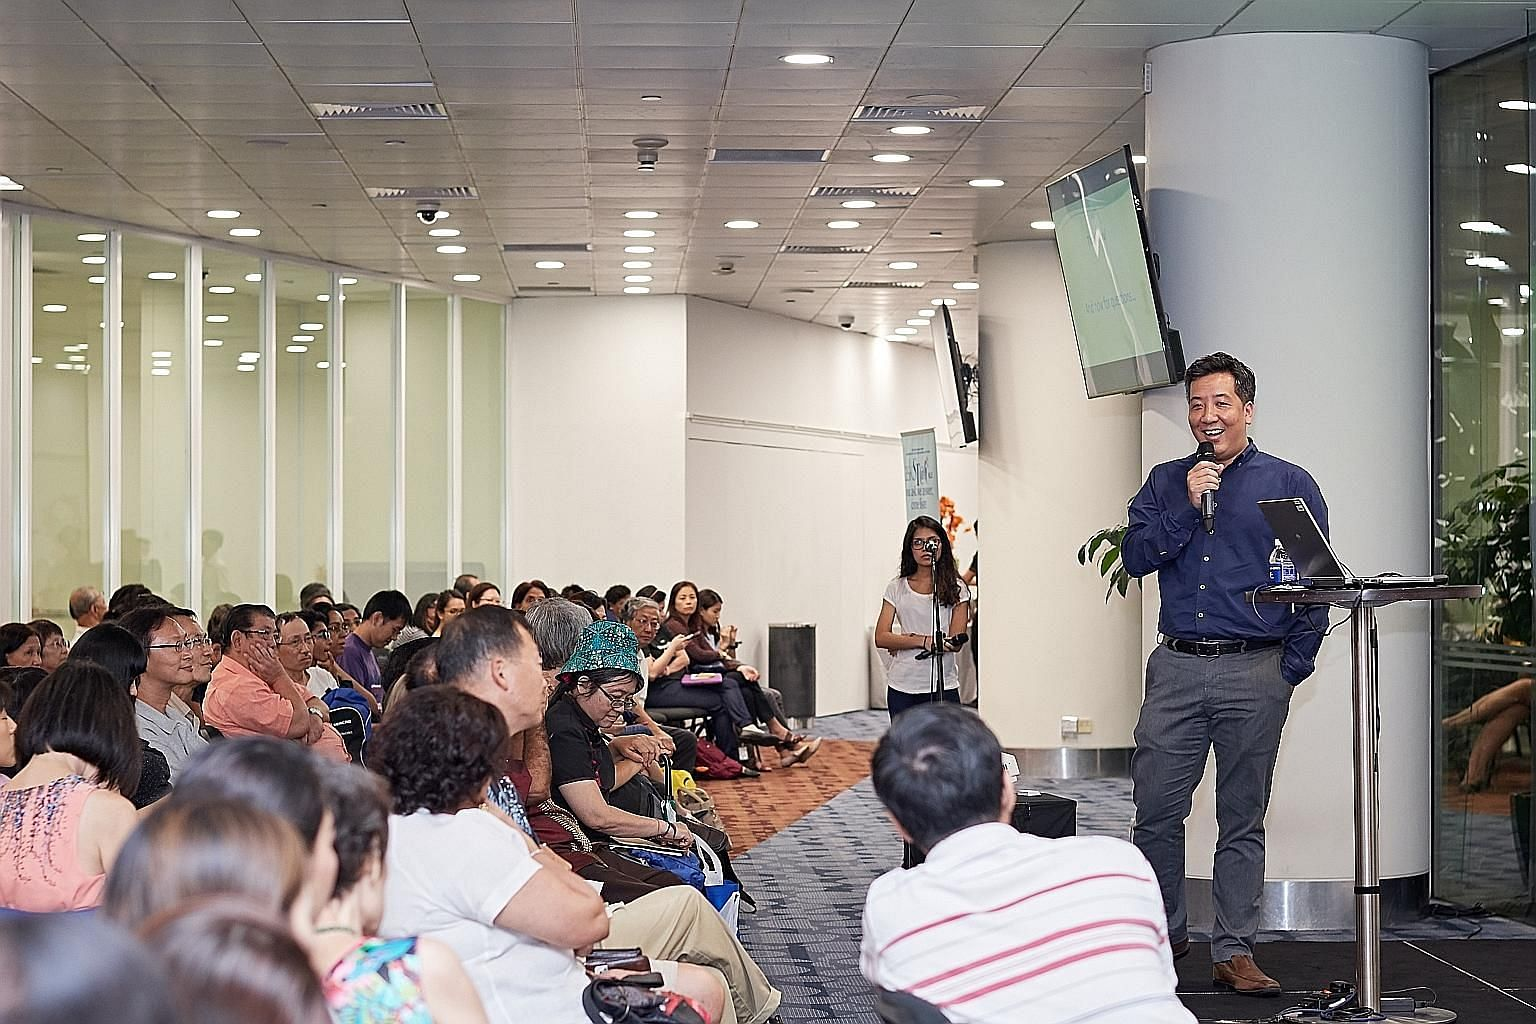 Straits Times news editor Marc Lim addressing some 200 people at the askST@NLB talk yesterday. He also tackled topics such as fake news and maintaining a newspaper's credibility.